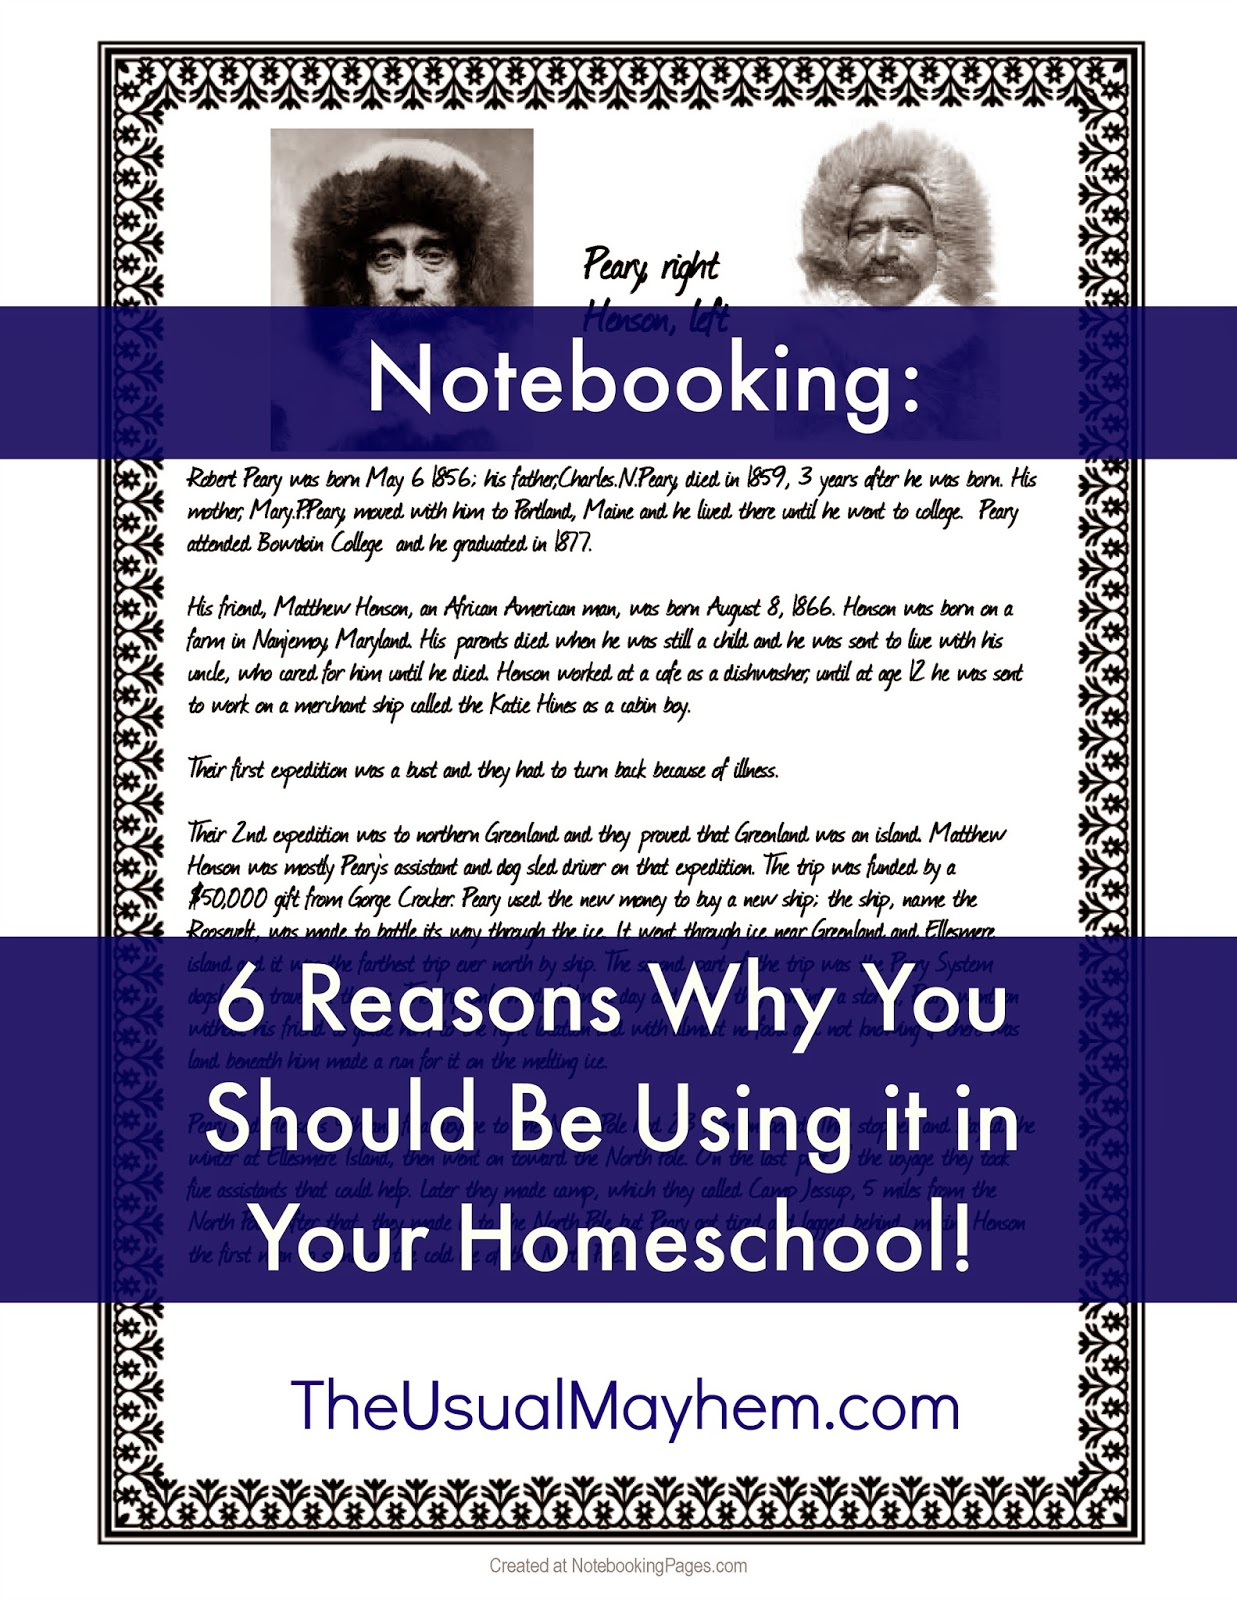 Reasons why you should use notebooking in your homeschool the